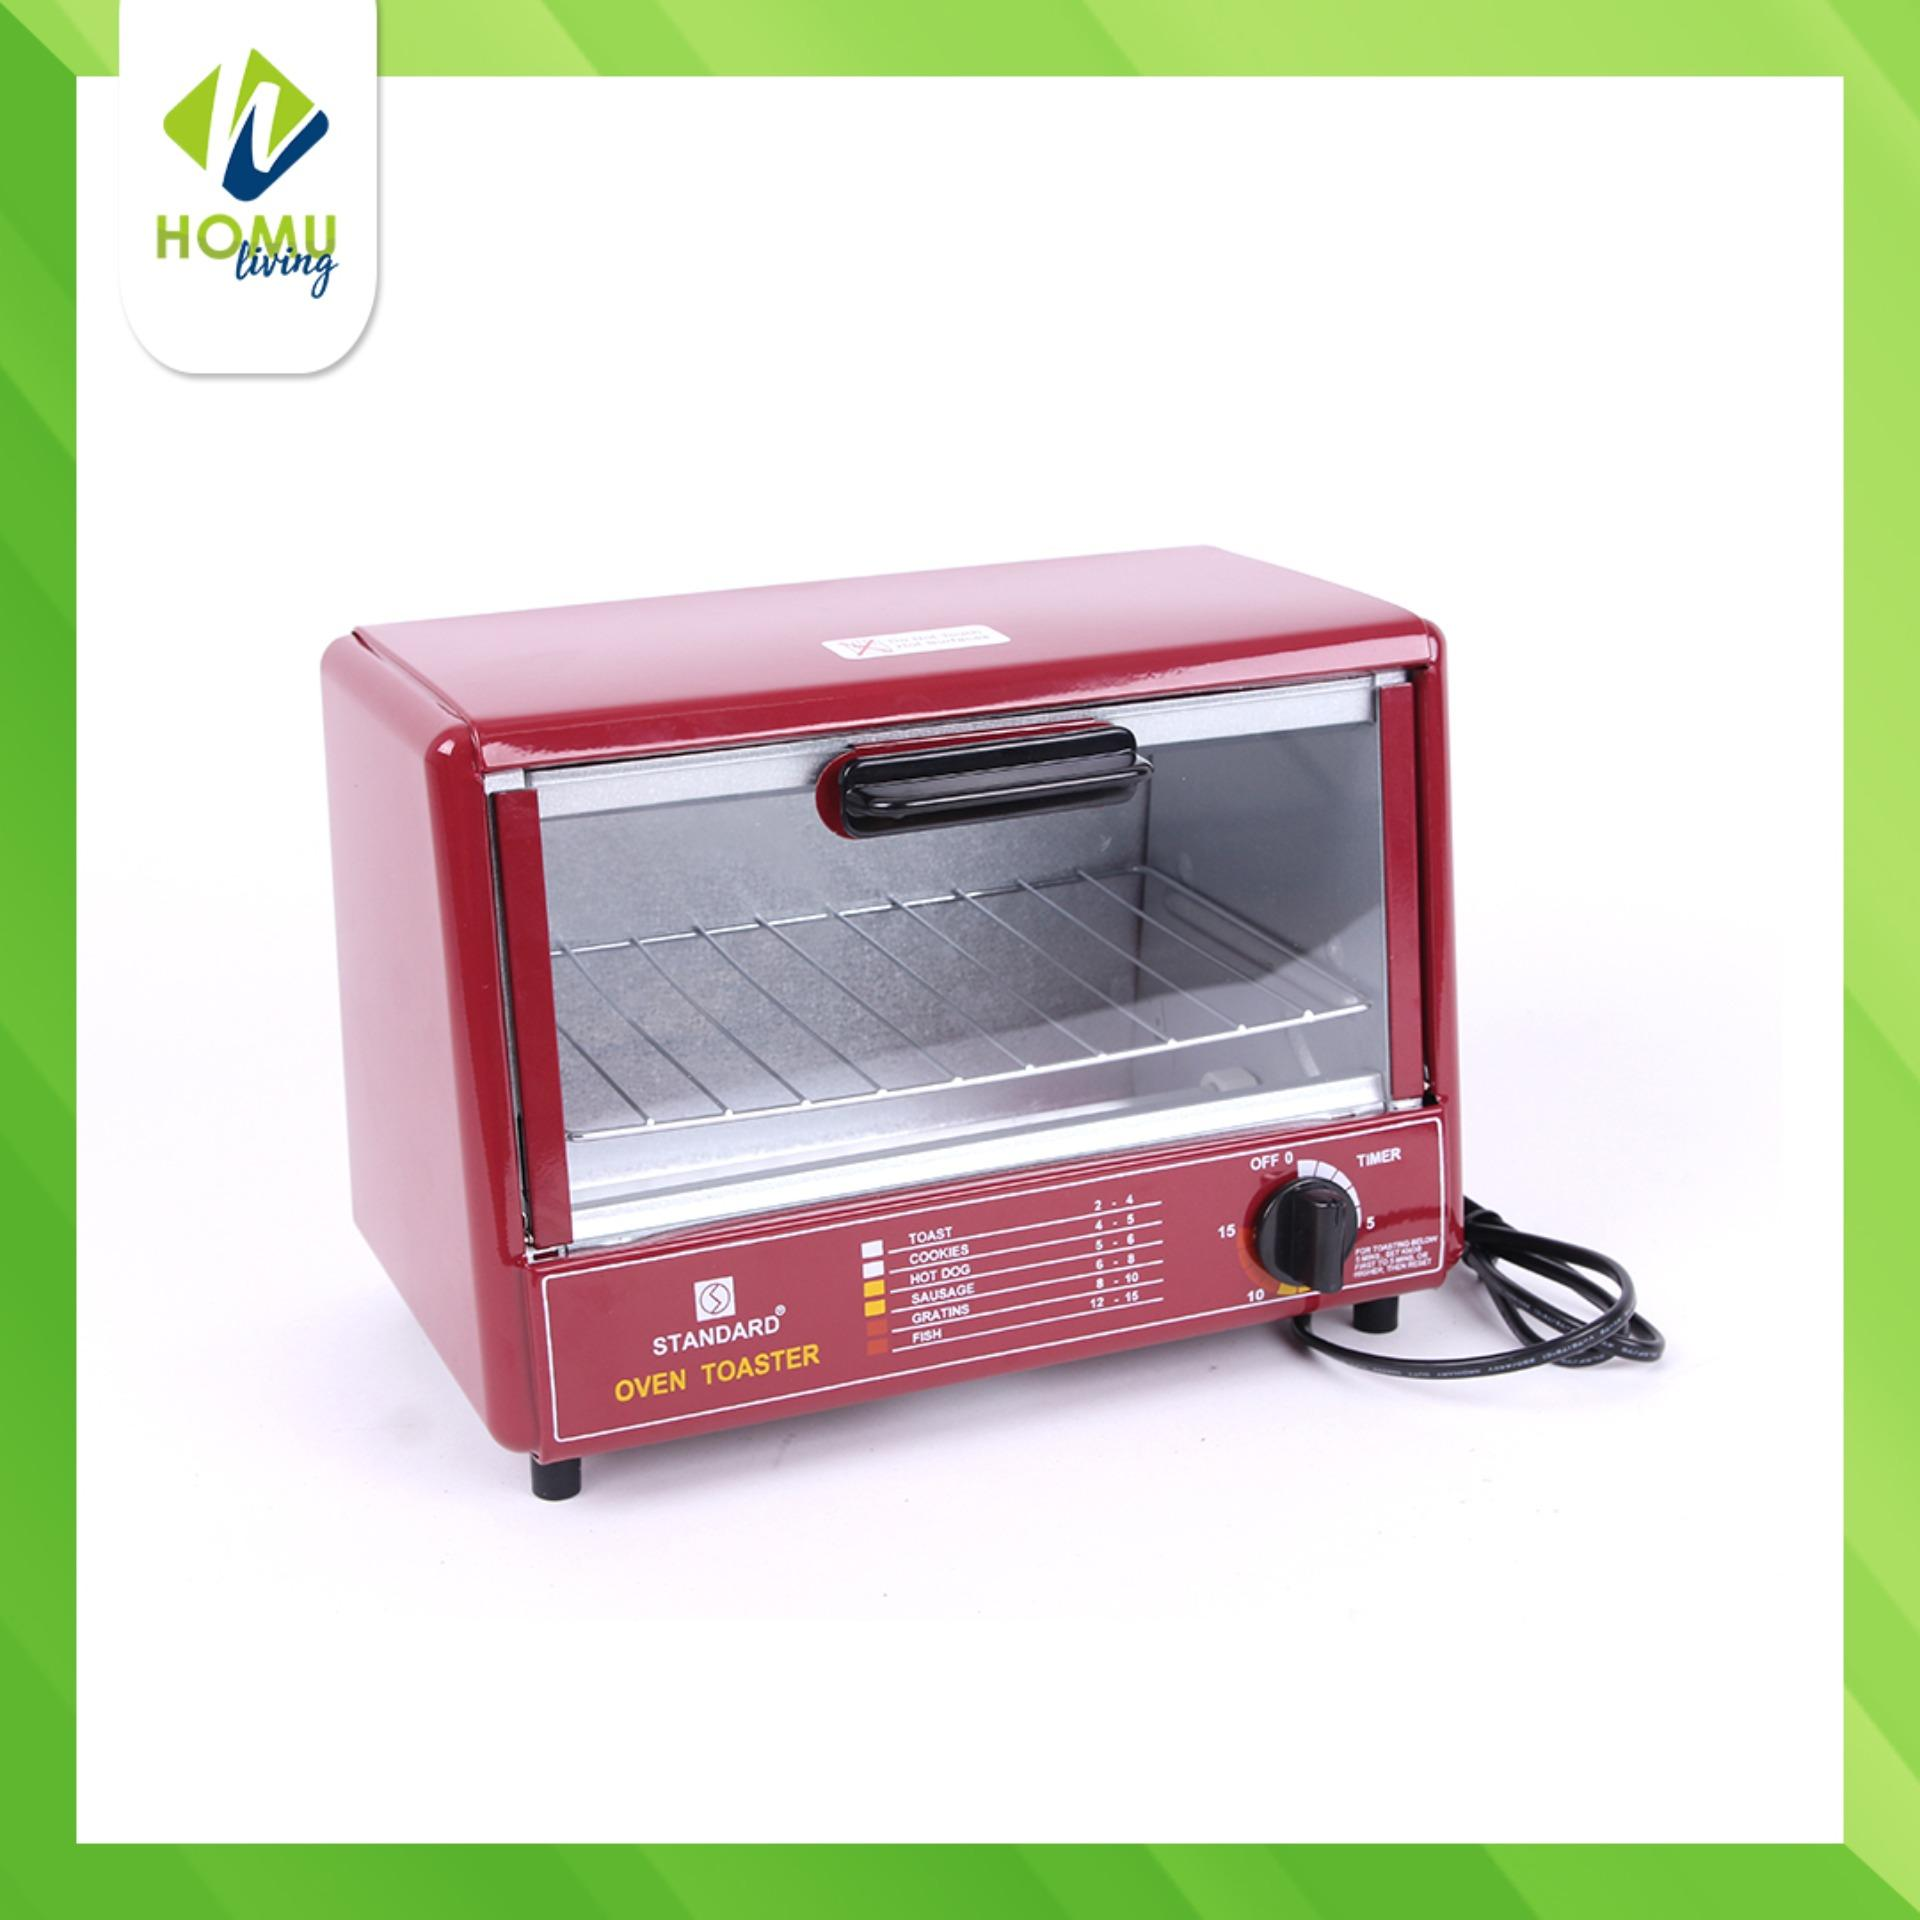 Standard Sot 602 Wide Oven Toaster Red